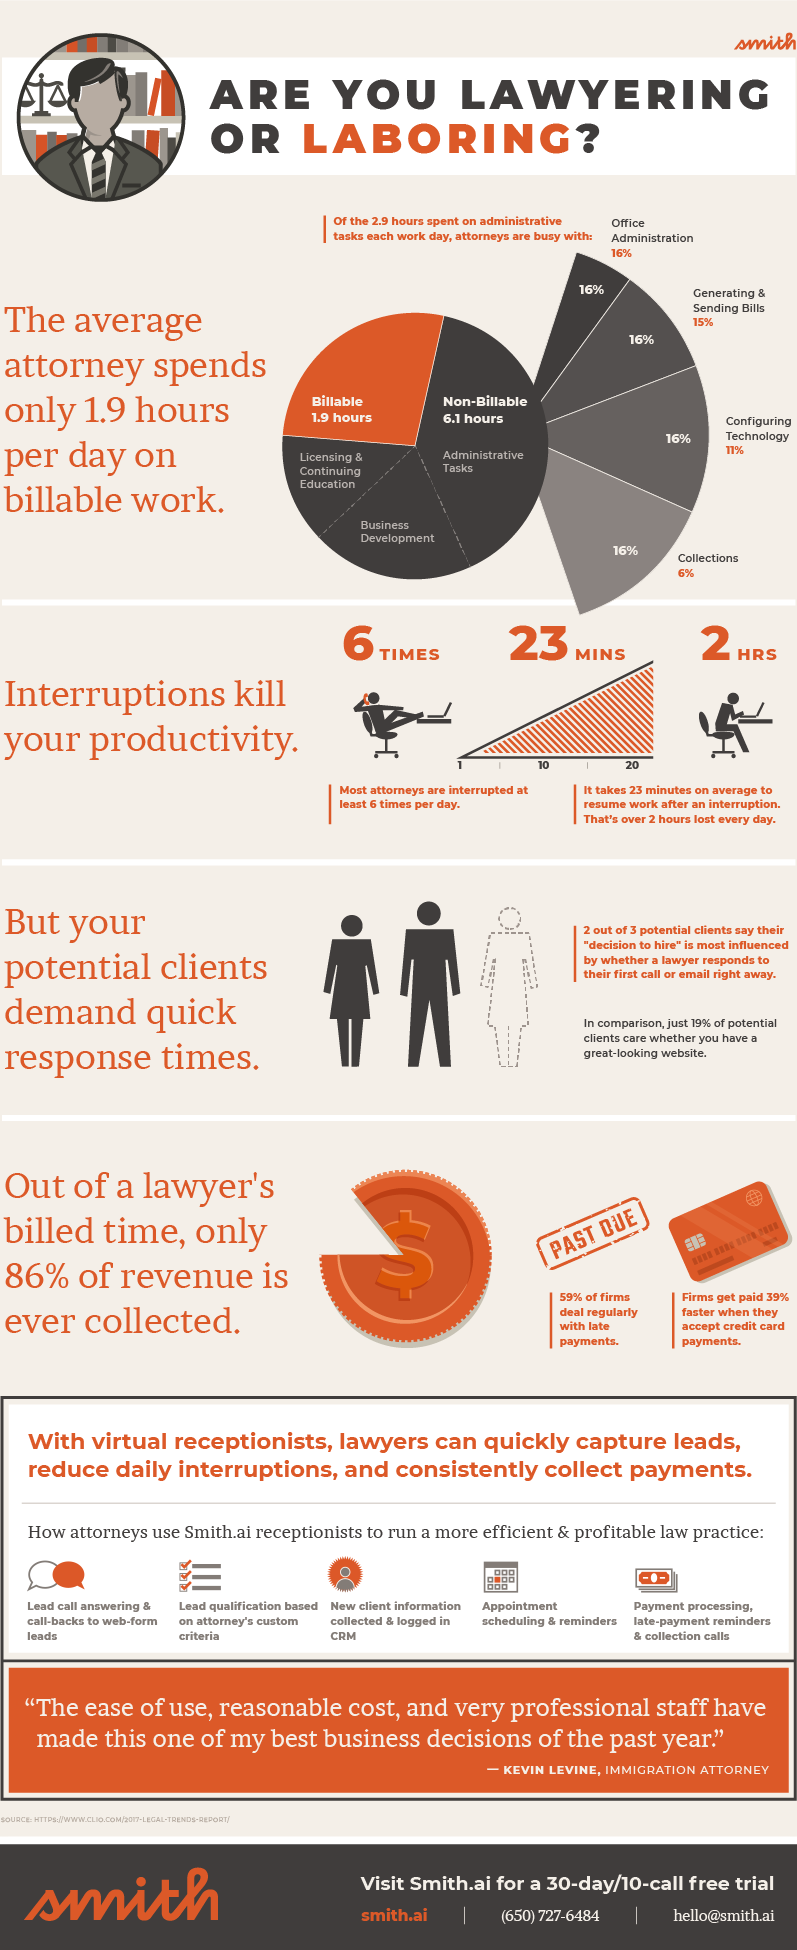 lawyering or laboring smith.ai infographic